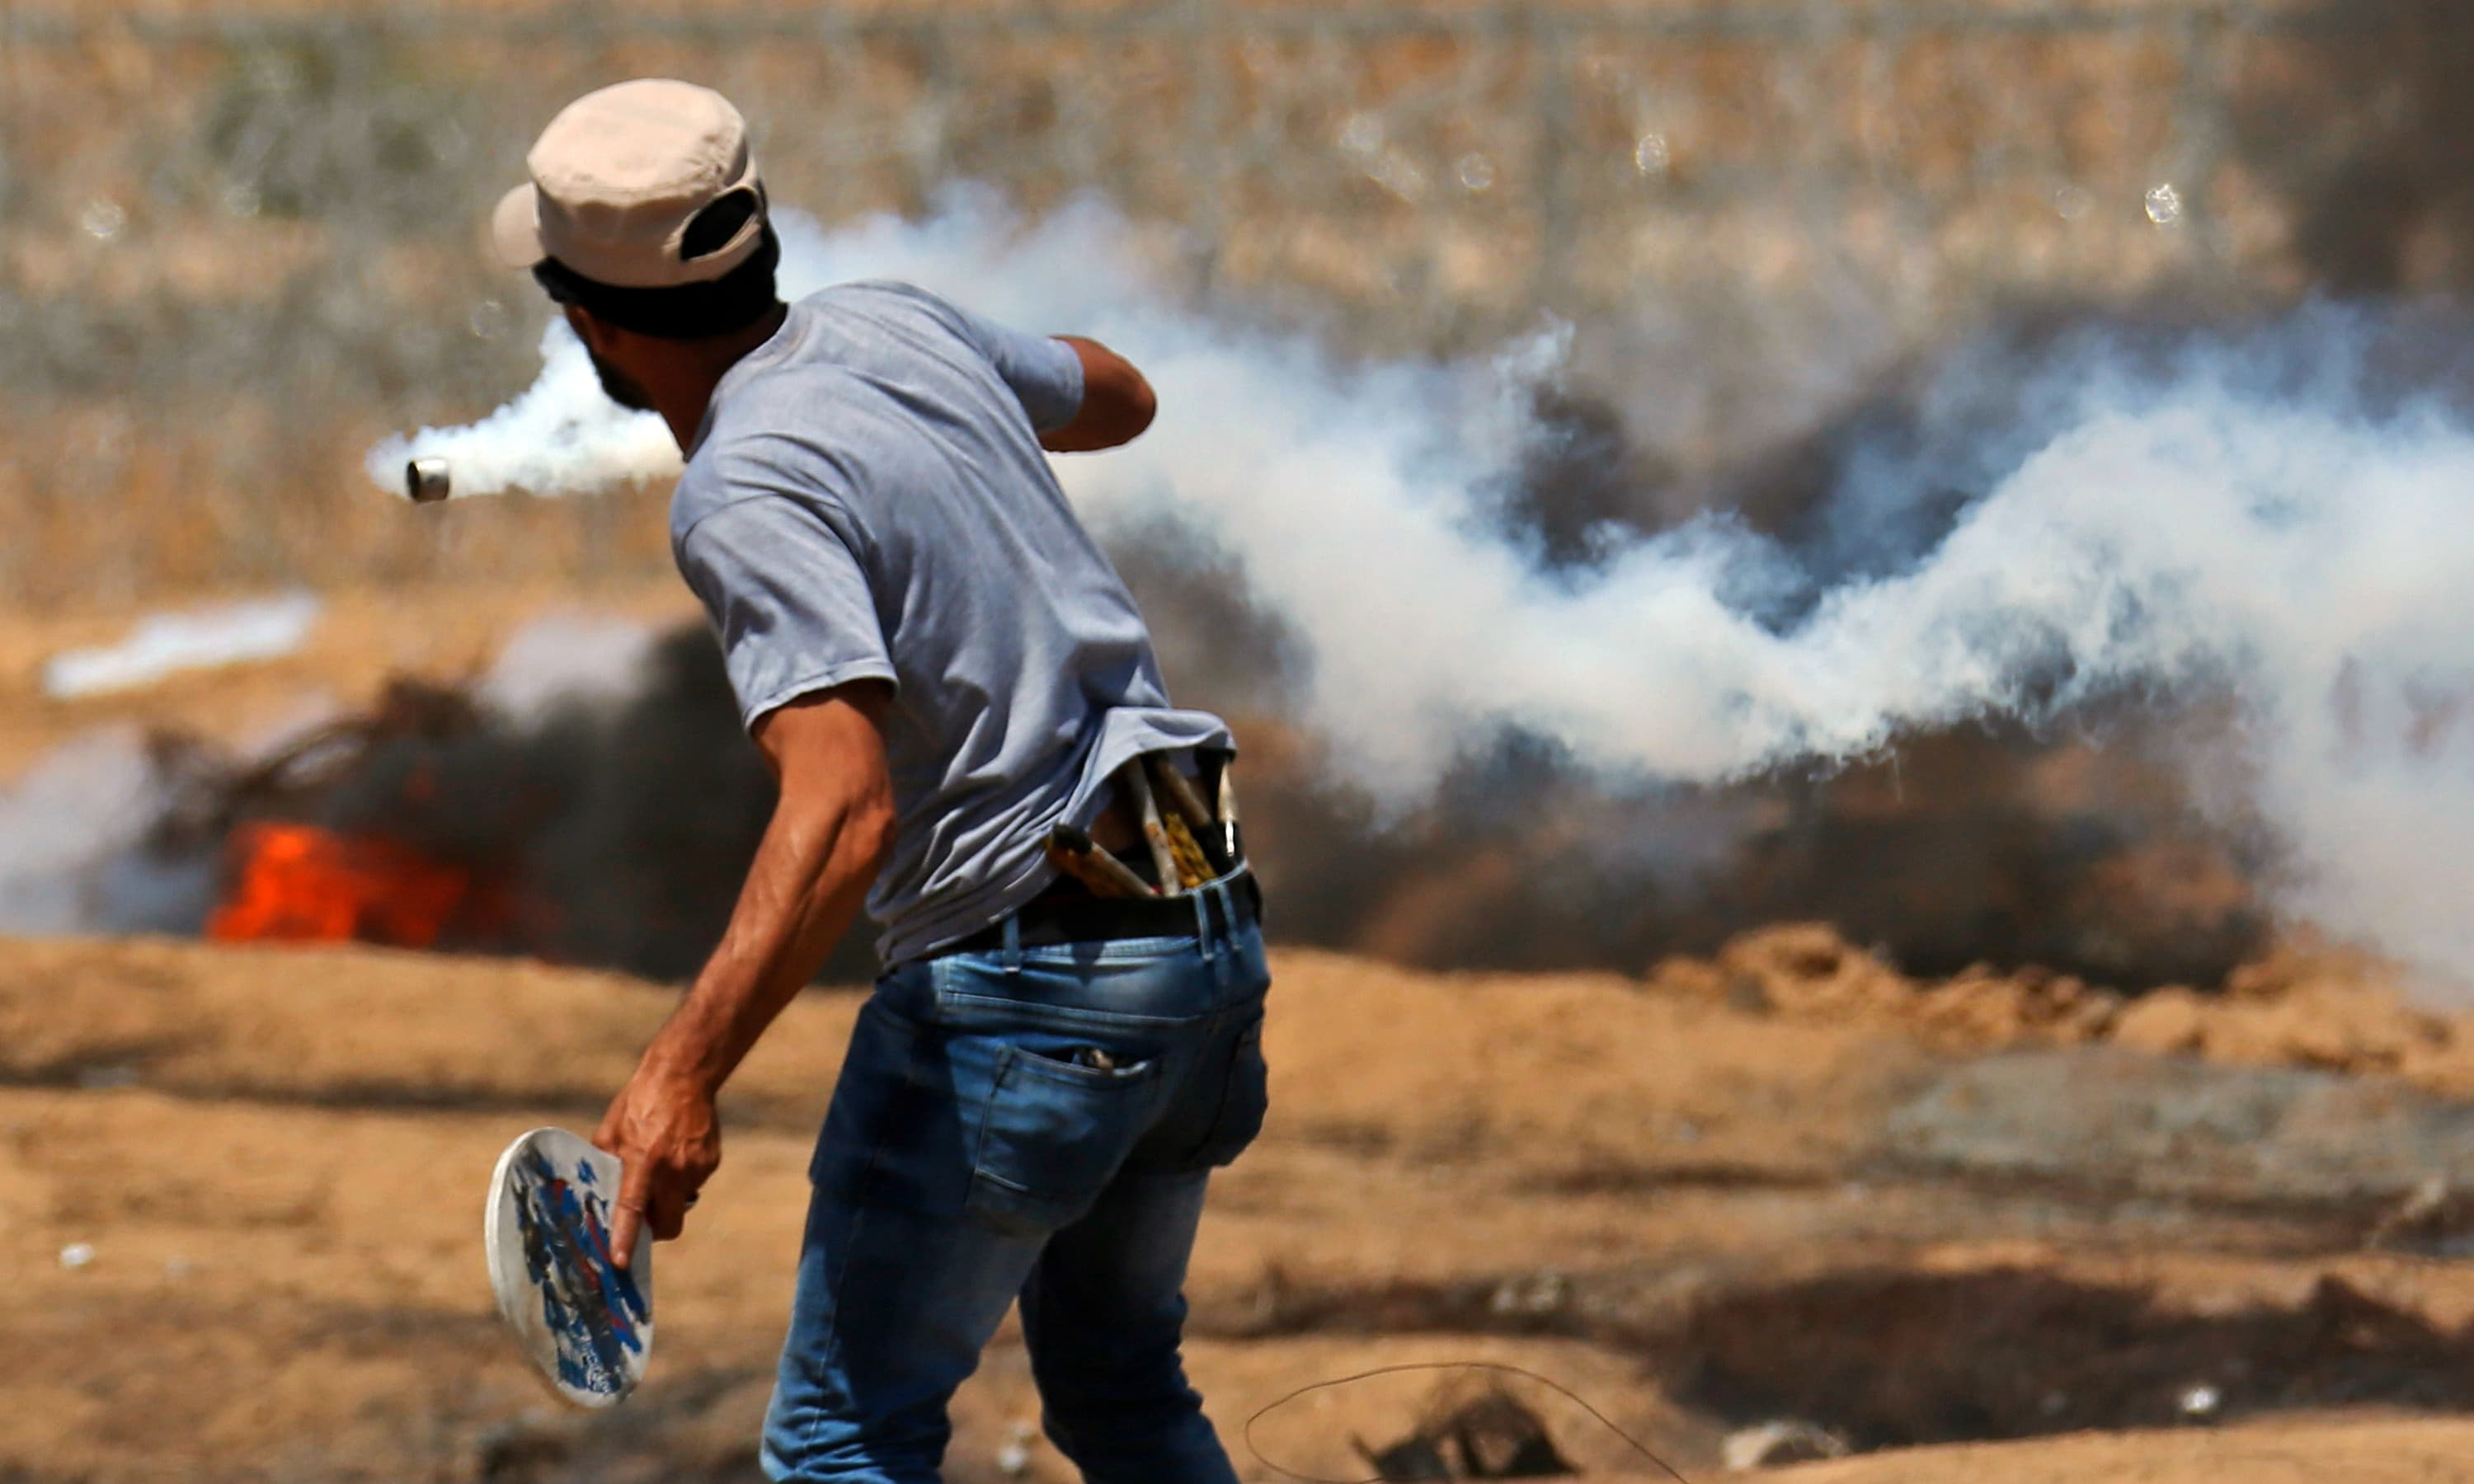 A protester uses a racket to hit back a tear gas canister across a barbed-wire fence during clashes with Israeli forces. —AFP